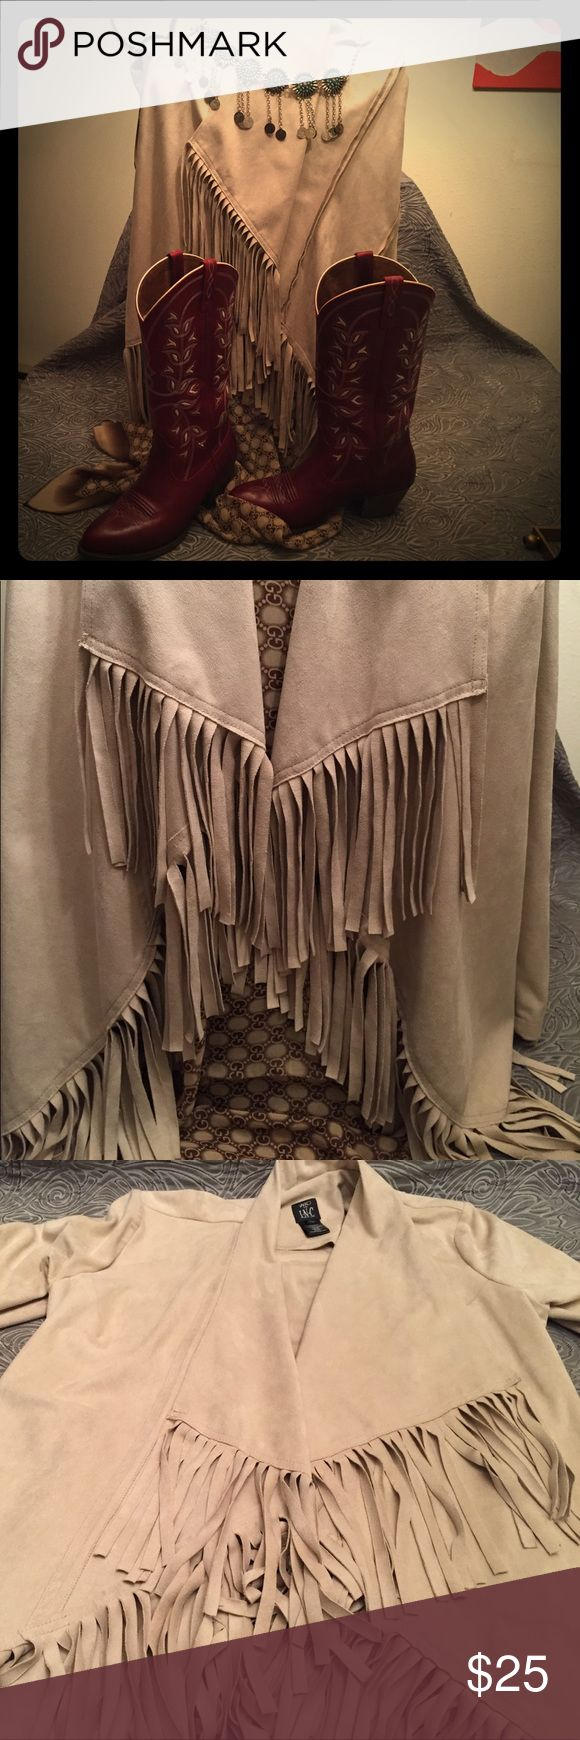 "Vaco for INC Faux Suede Fringed Jacket in Buff Southwestern fashion is so hot right now!  This stunning fringed jacket looks great with boots and jeans or belted over a LBD.  I wore this one time. EUC.  Size M but loose and drapey so will also fit L size. Pit to pit at the smallest draping: 19"".  Fully open: 22"". Machine wash cold, line dry INC International Concepts Jackets & Coats Blazers"